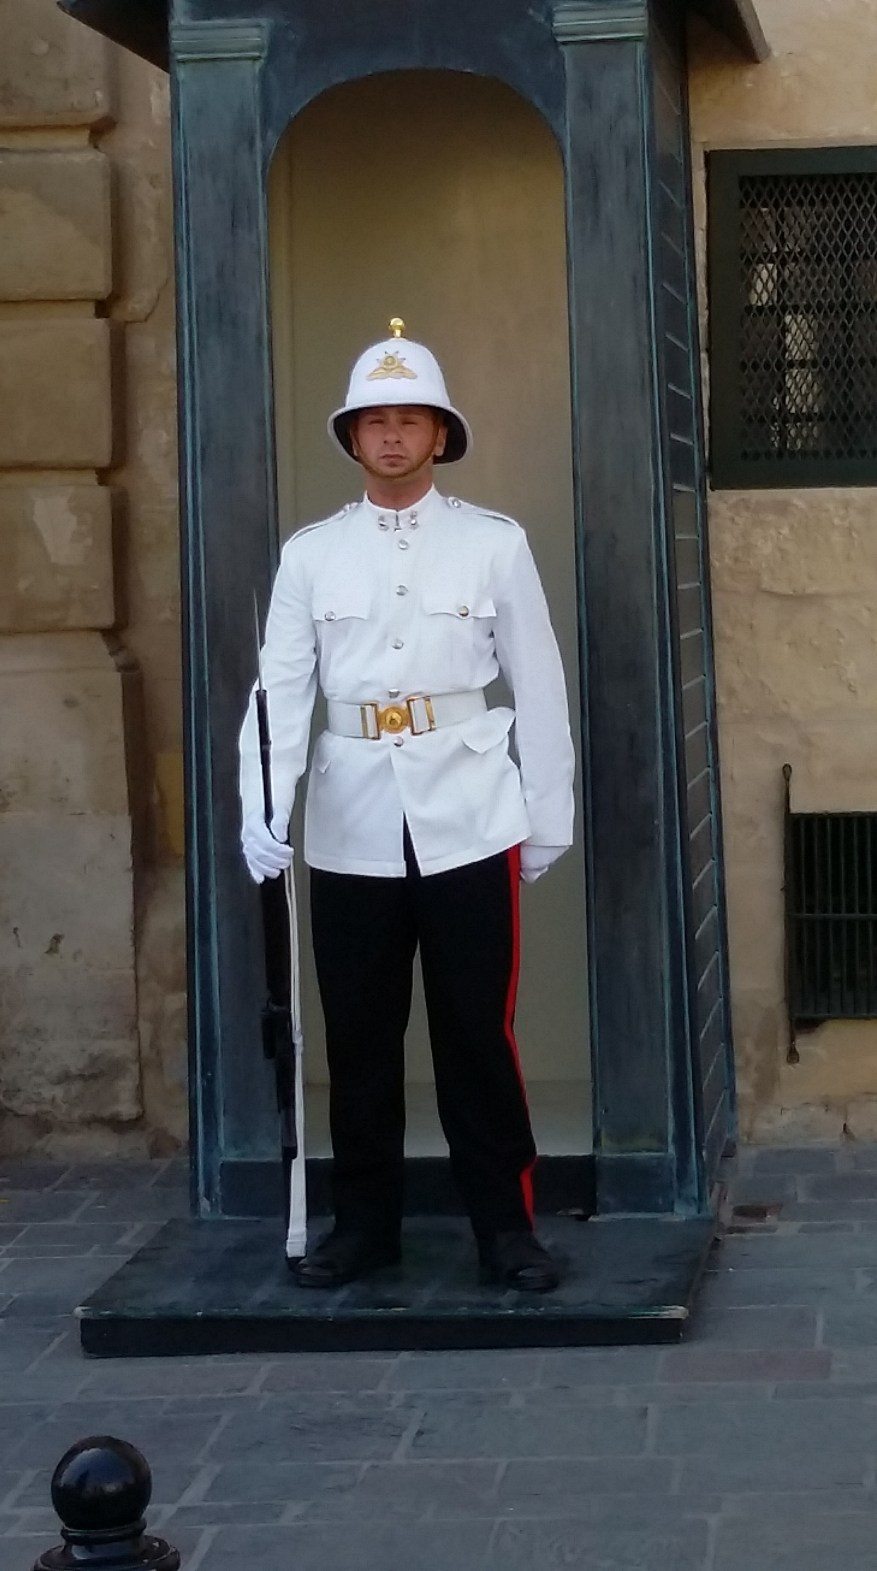 Guardian In front of the Palace in Valletta